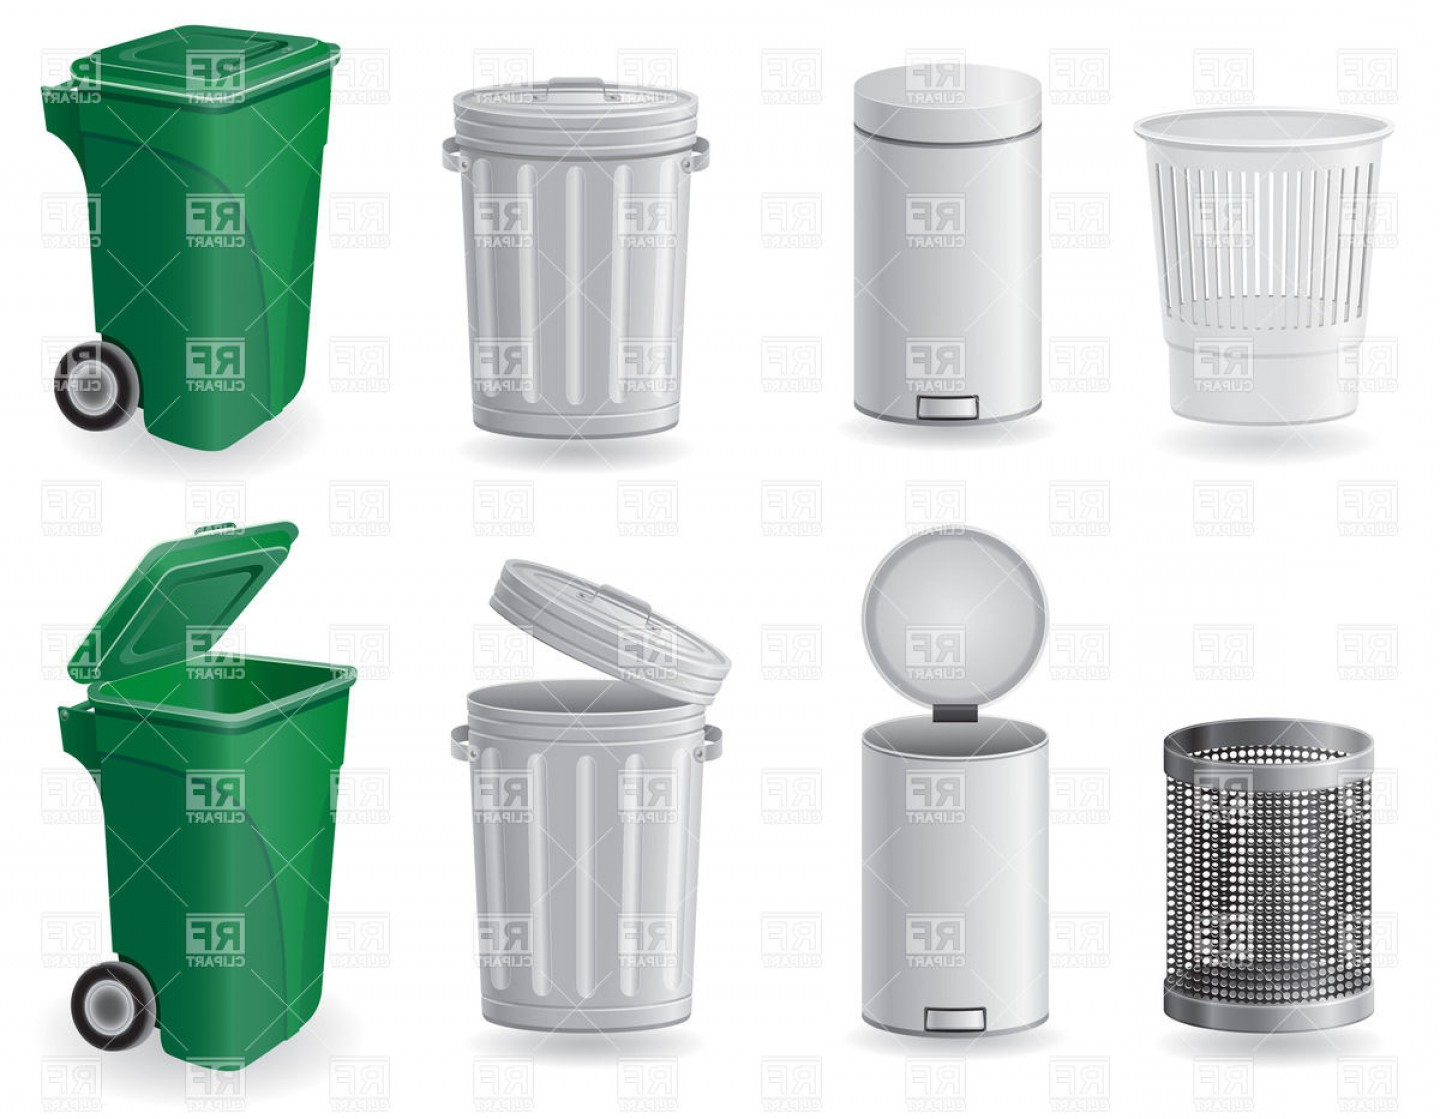 Trash can on wheels clipart png transparent stock Set Of Trash Cans And Dustbins Vector Clipart | SOIDERGI png transparent stock